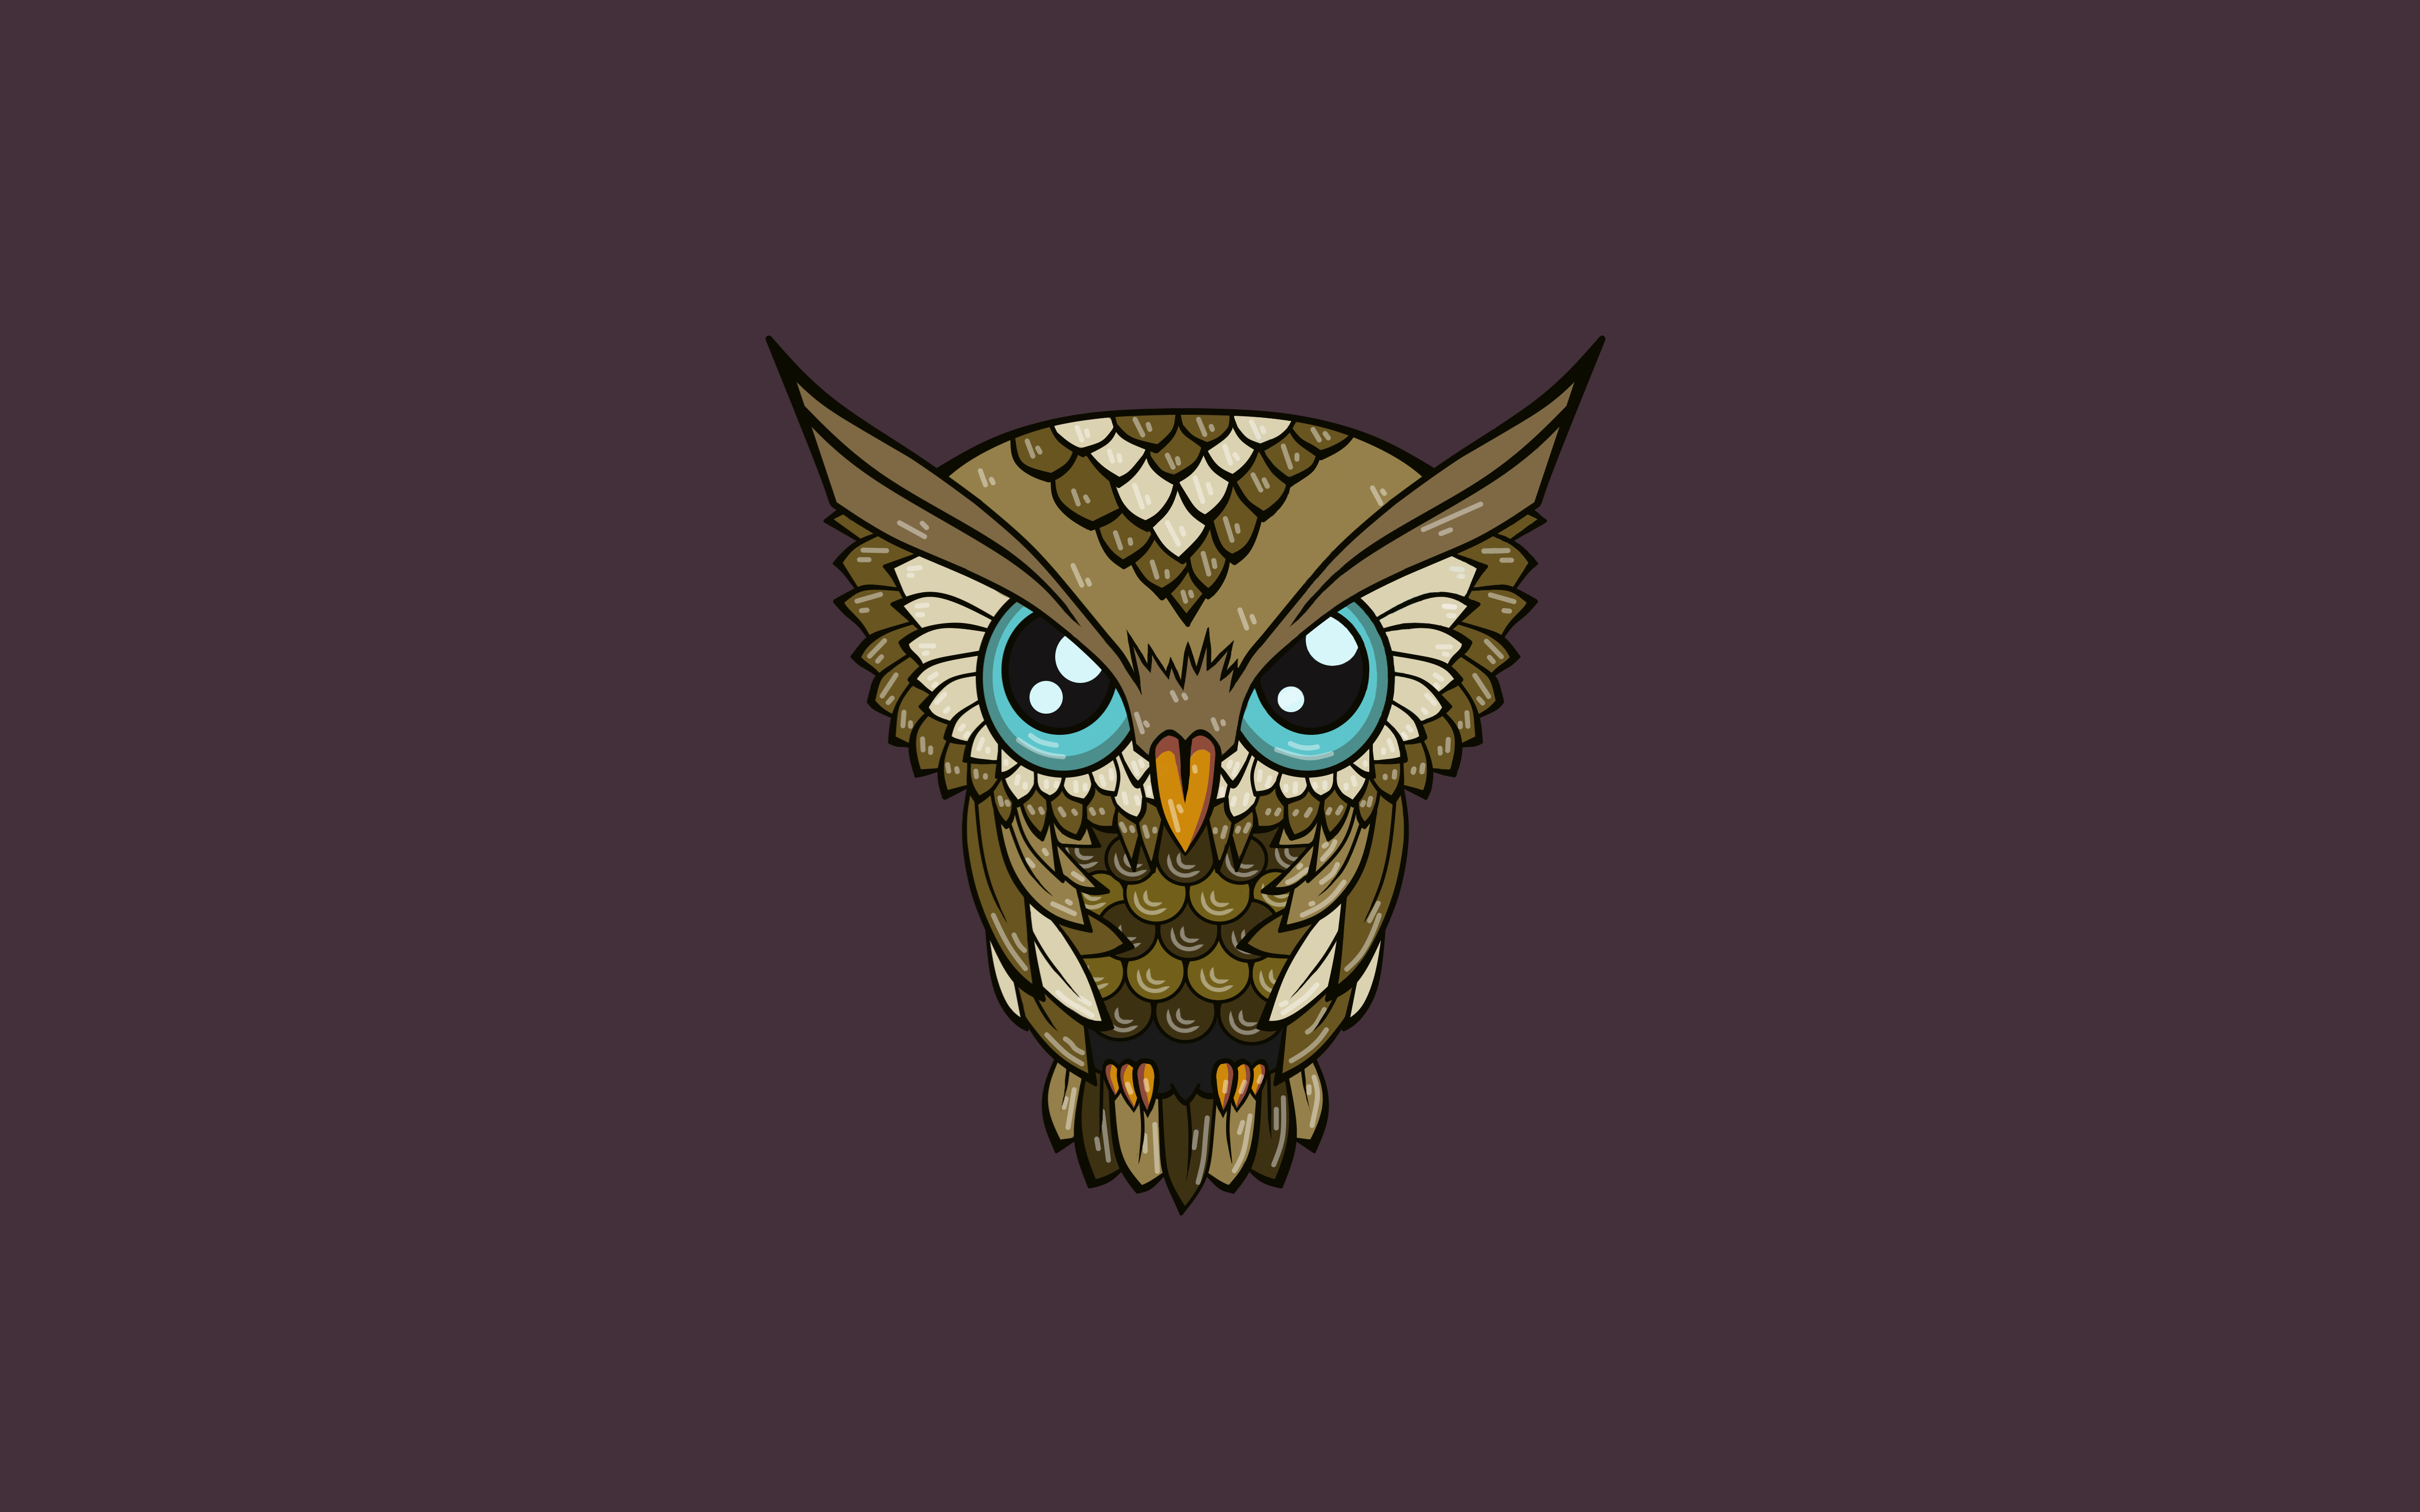 137980 download wallpaper Minimalism, Art, Owl, Vector screensavers and pictures for free